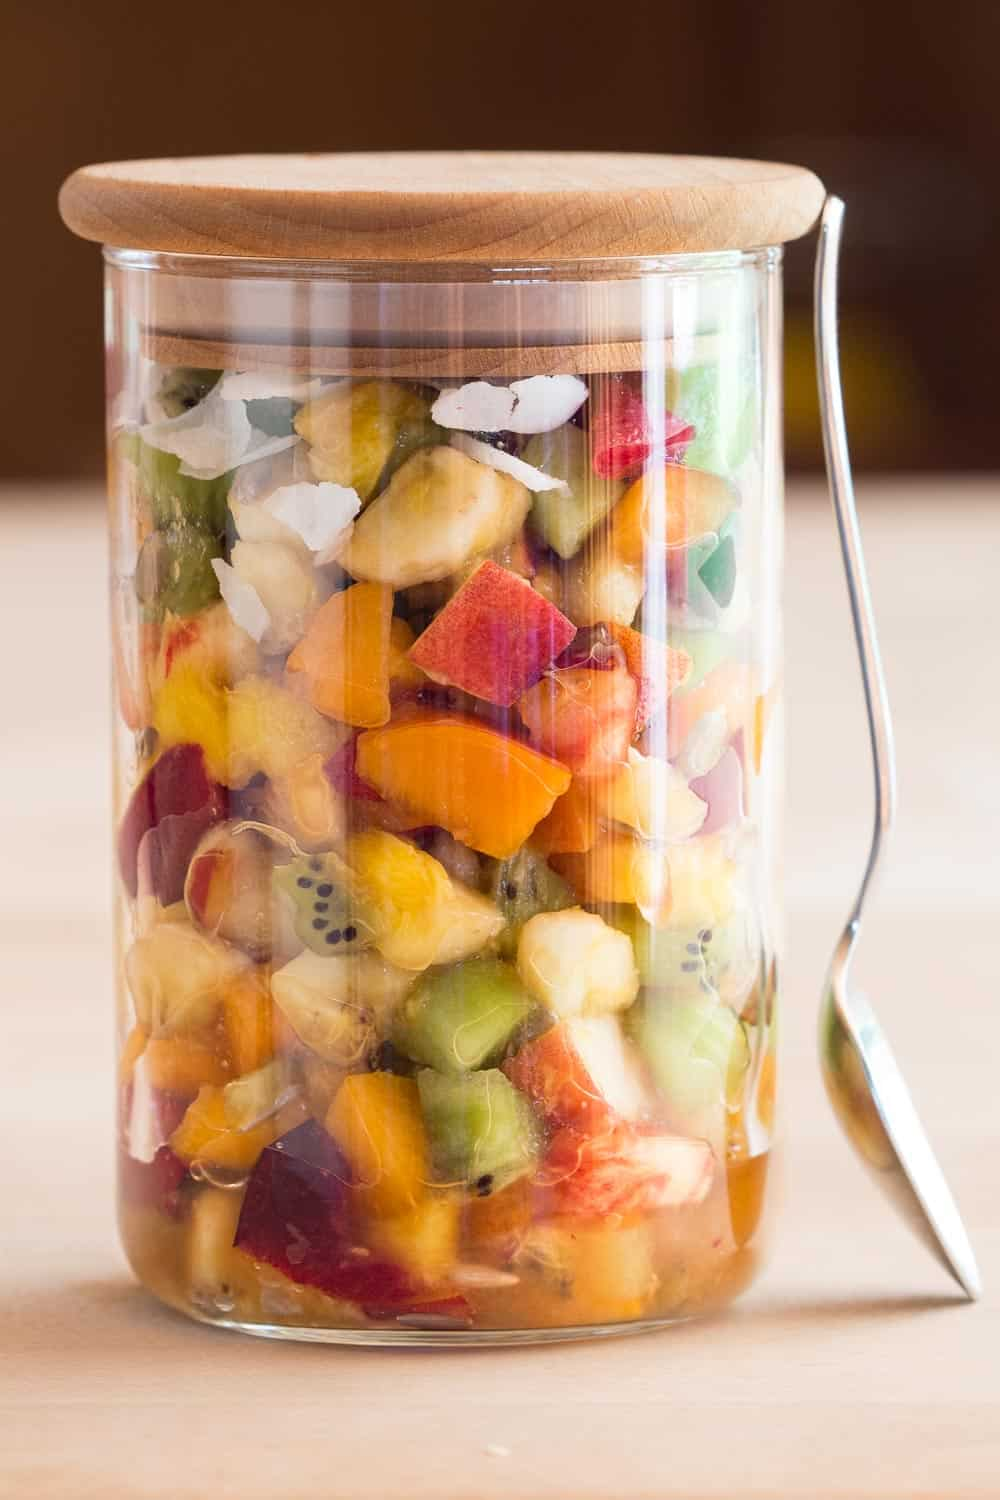 Mango Fruit Salad in a jar with a spoon leaning against it.